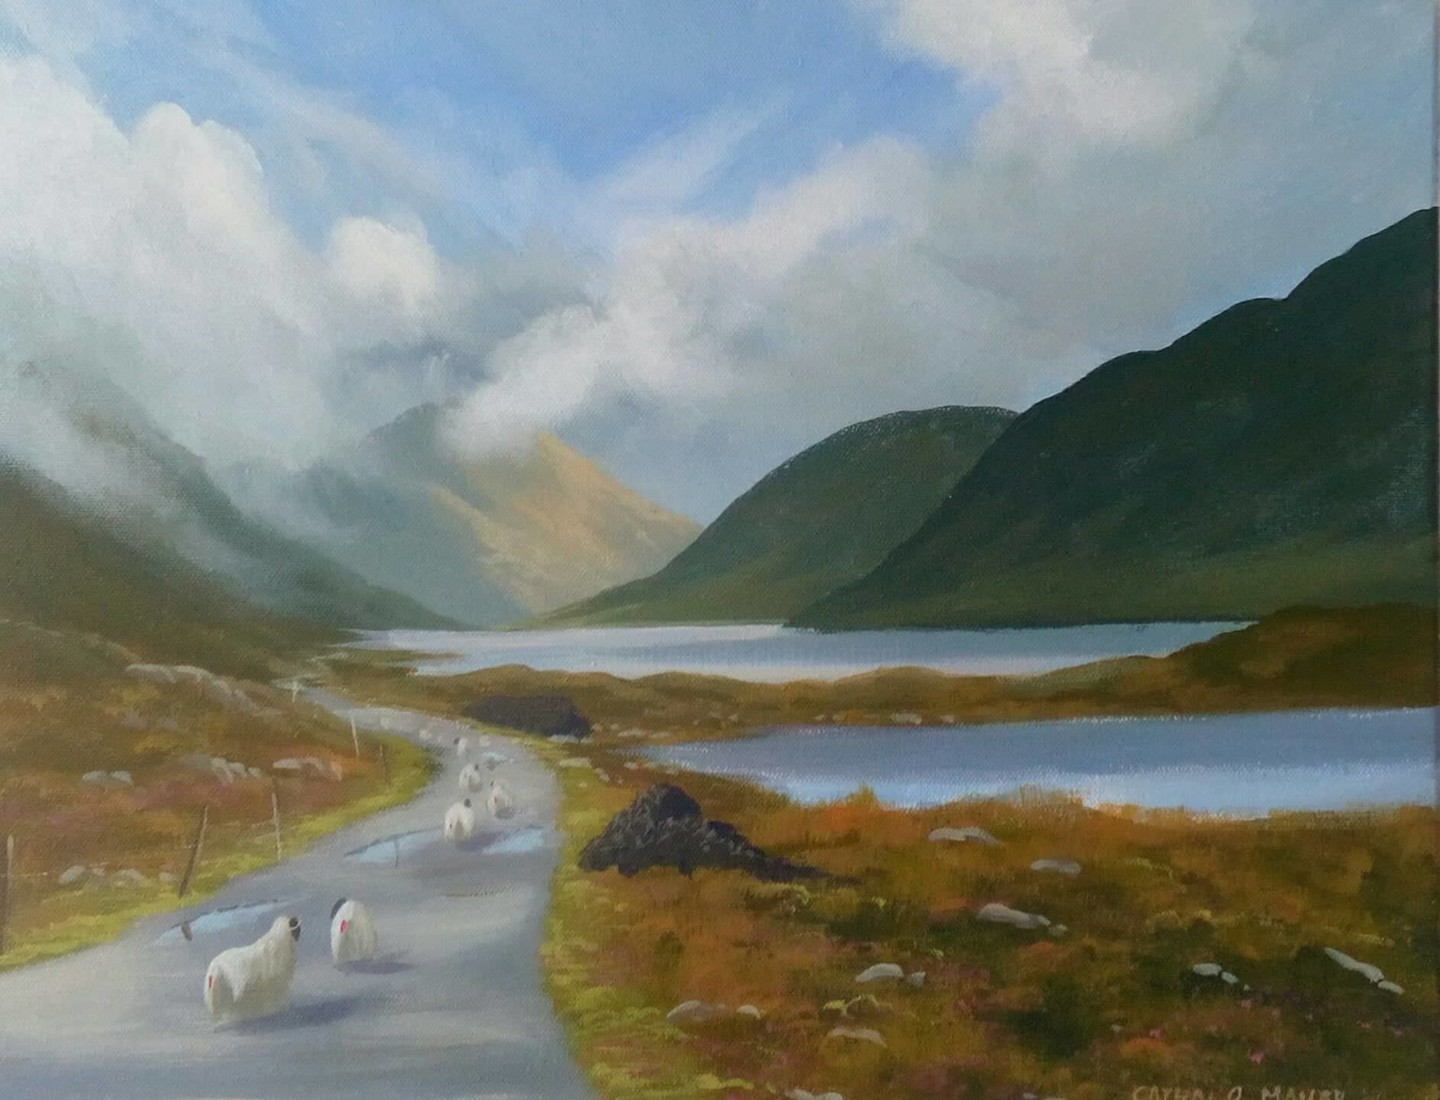 Cathal O Malley - doolough valley 2020